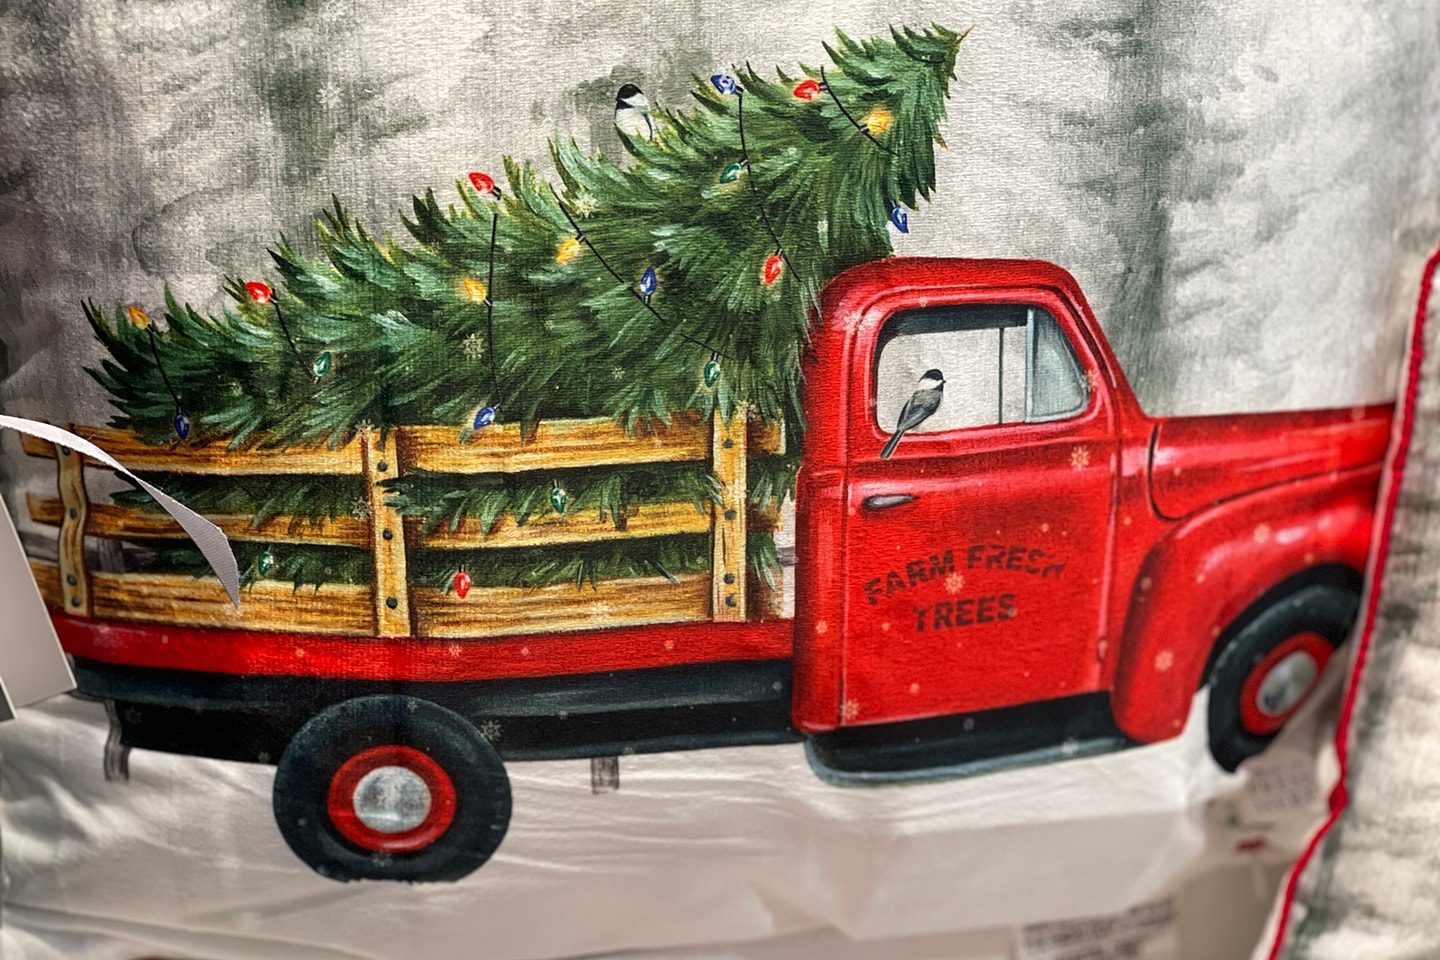 Farm Fresh Trees Red Truck with Christmas Trees